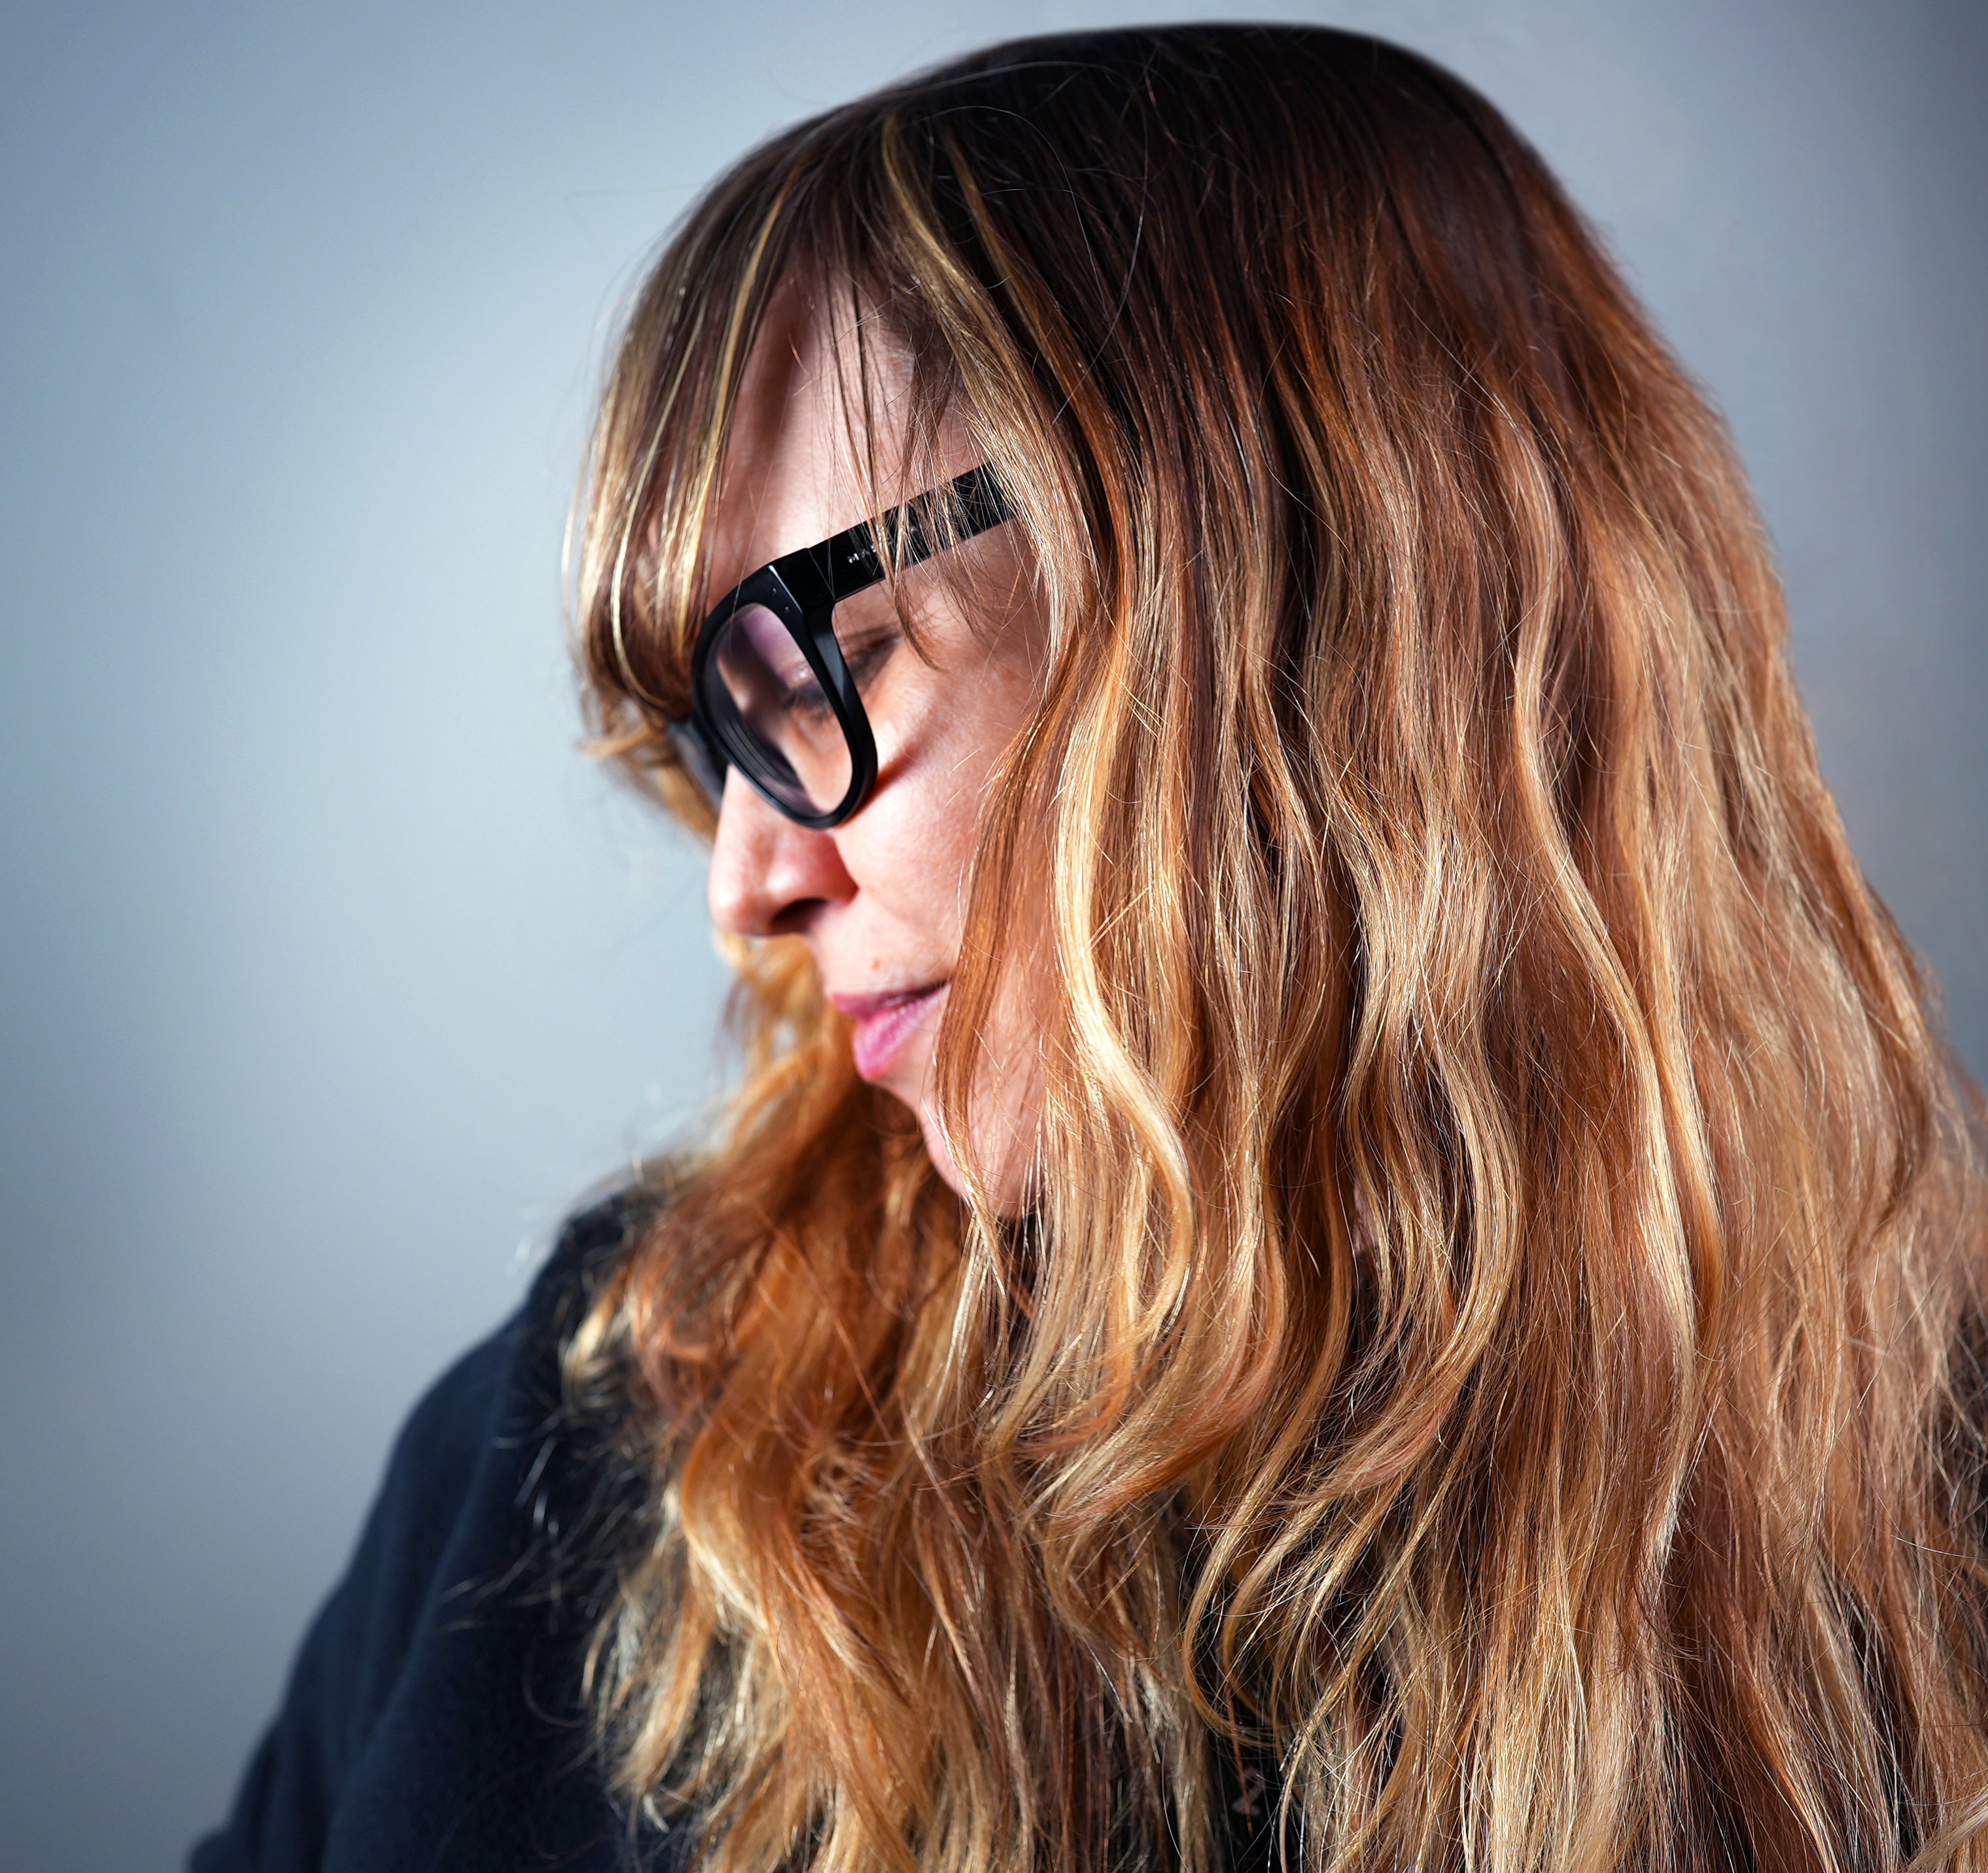 Holly Danger, an Experiential Designer and Video Artist based in Stamford.